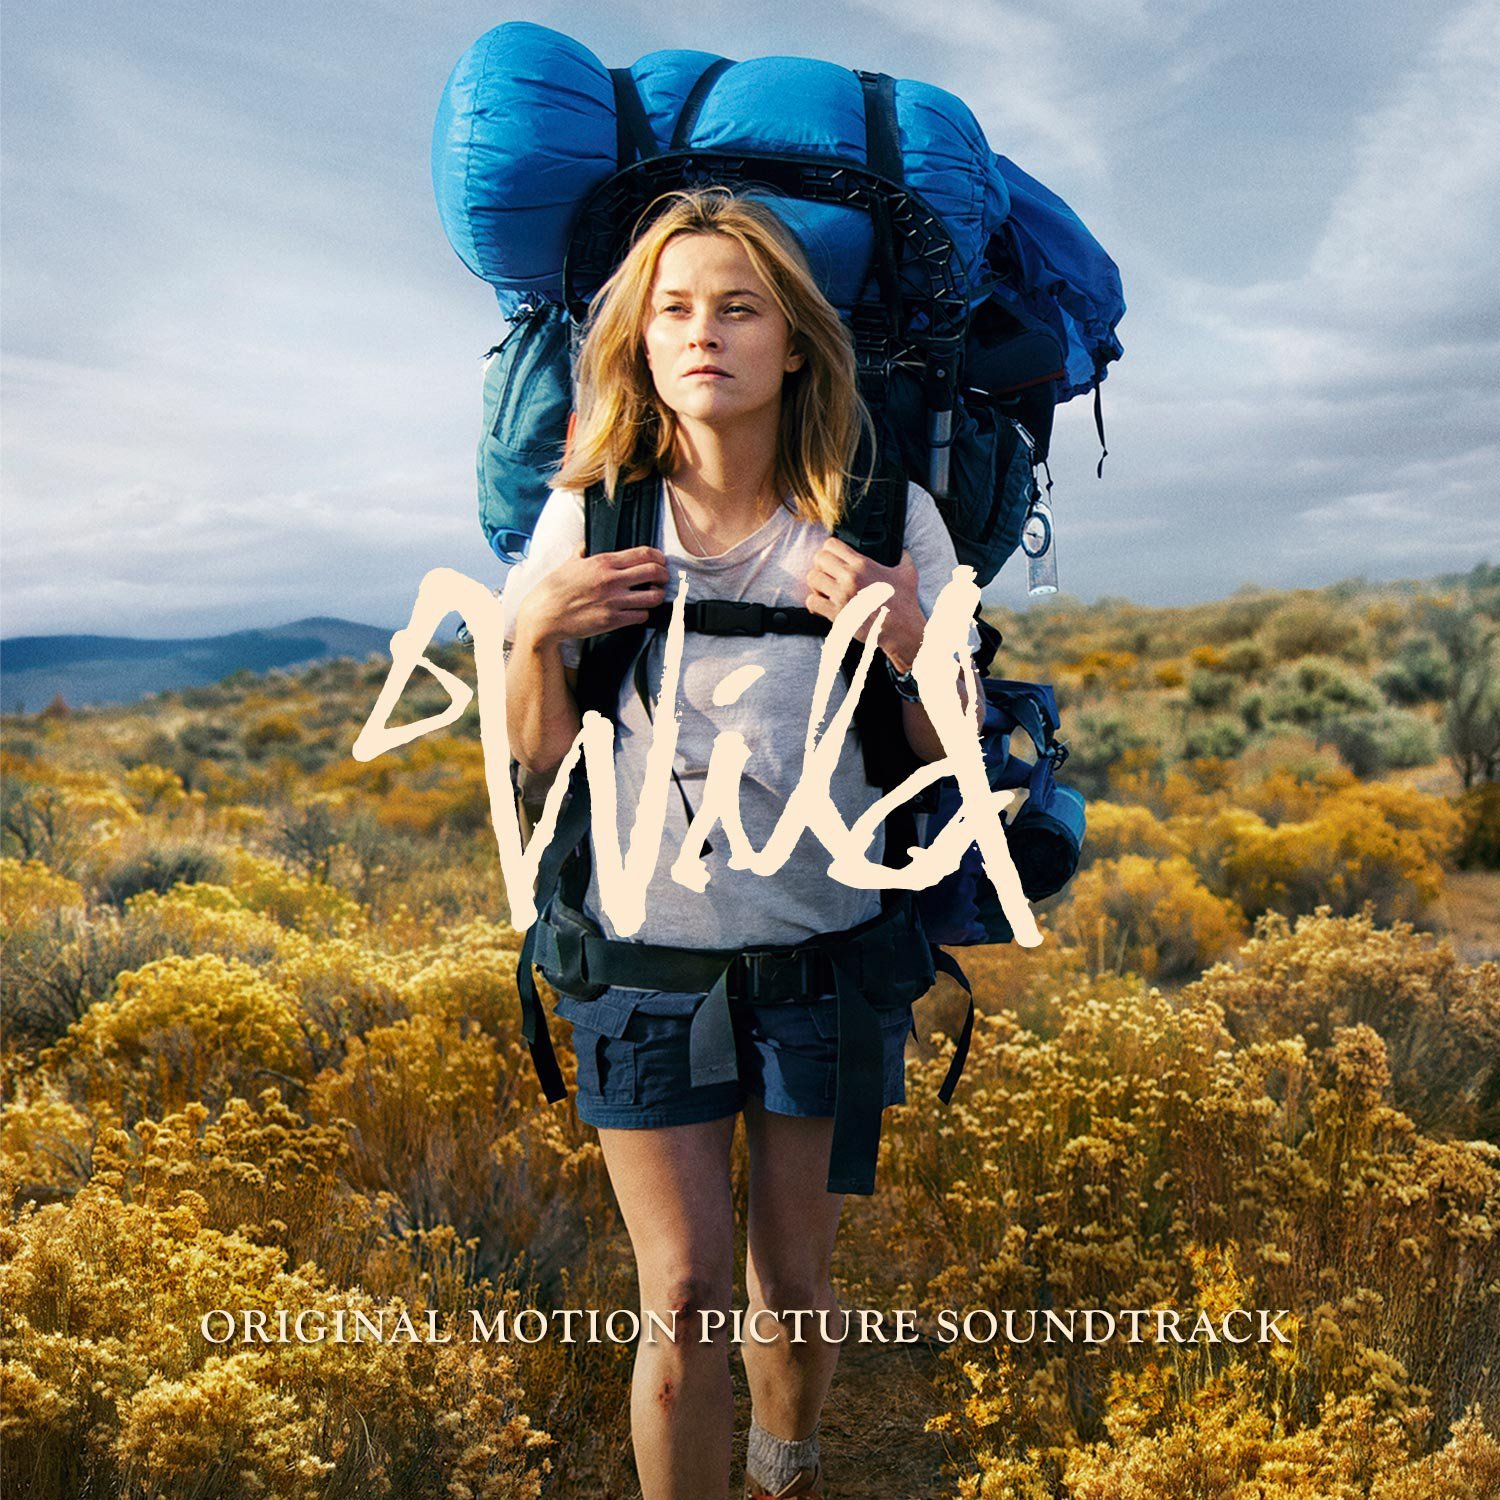 Wild: Original Motion Picture Soundtrack Arrives Everywhere On November 10, 2014